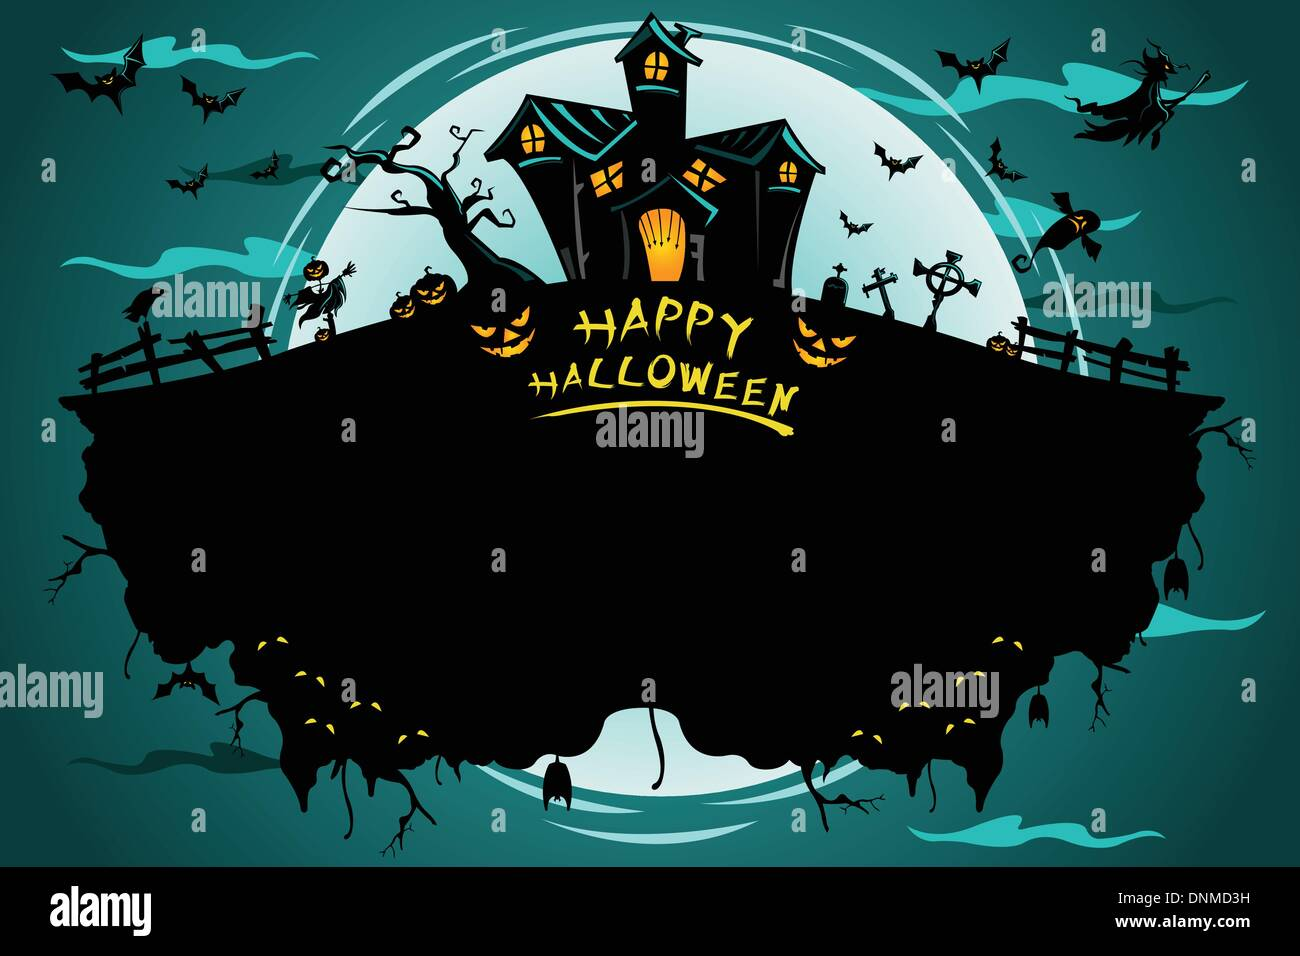 Eine Vektor-Illustration von Halloween-Poster-design Stockbild